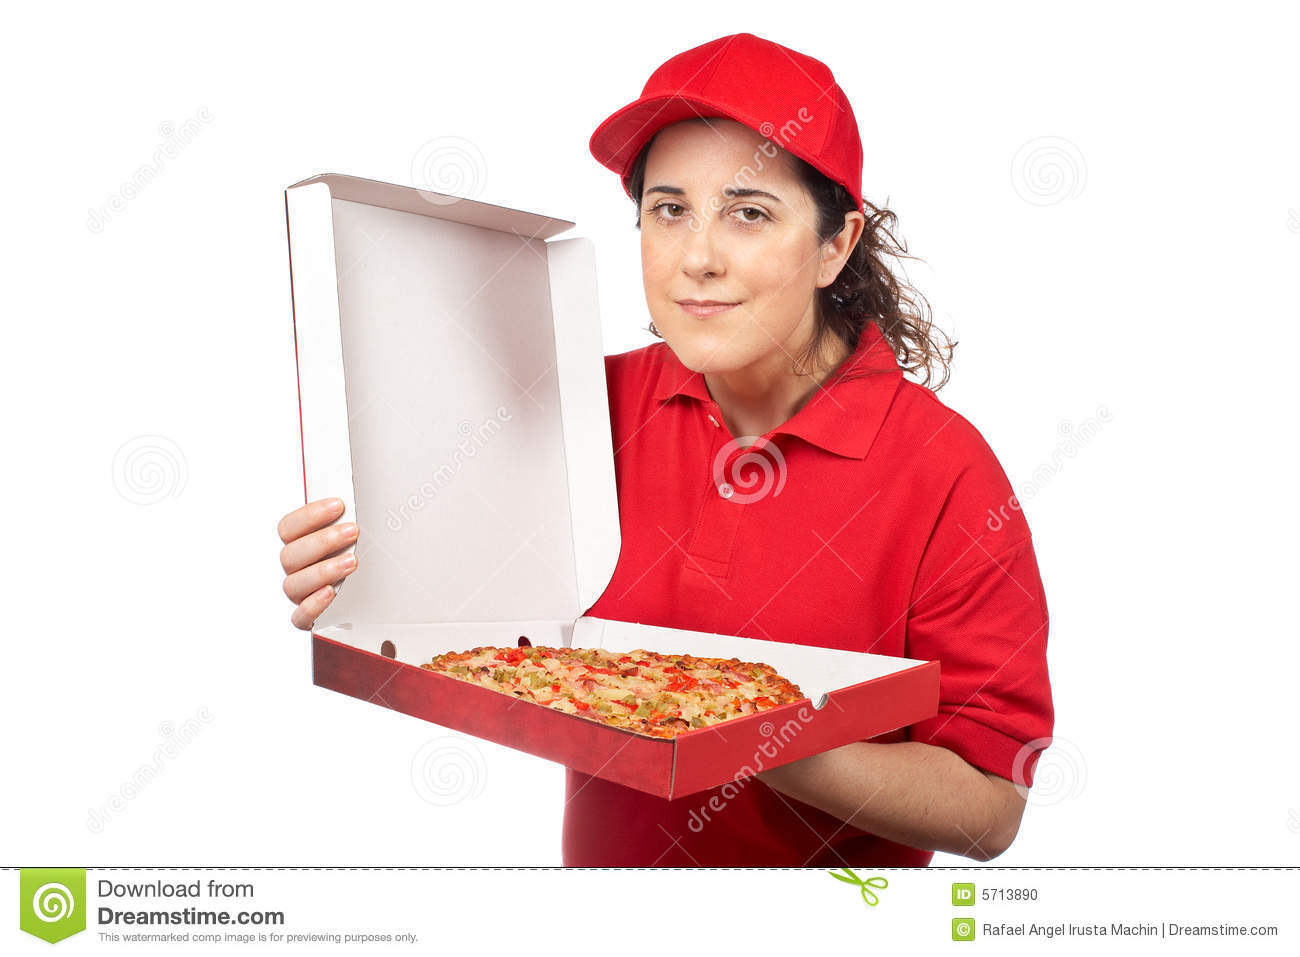 Pizza delivery woman stock photo. Image of fresh, greasy ...